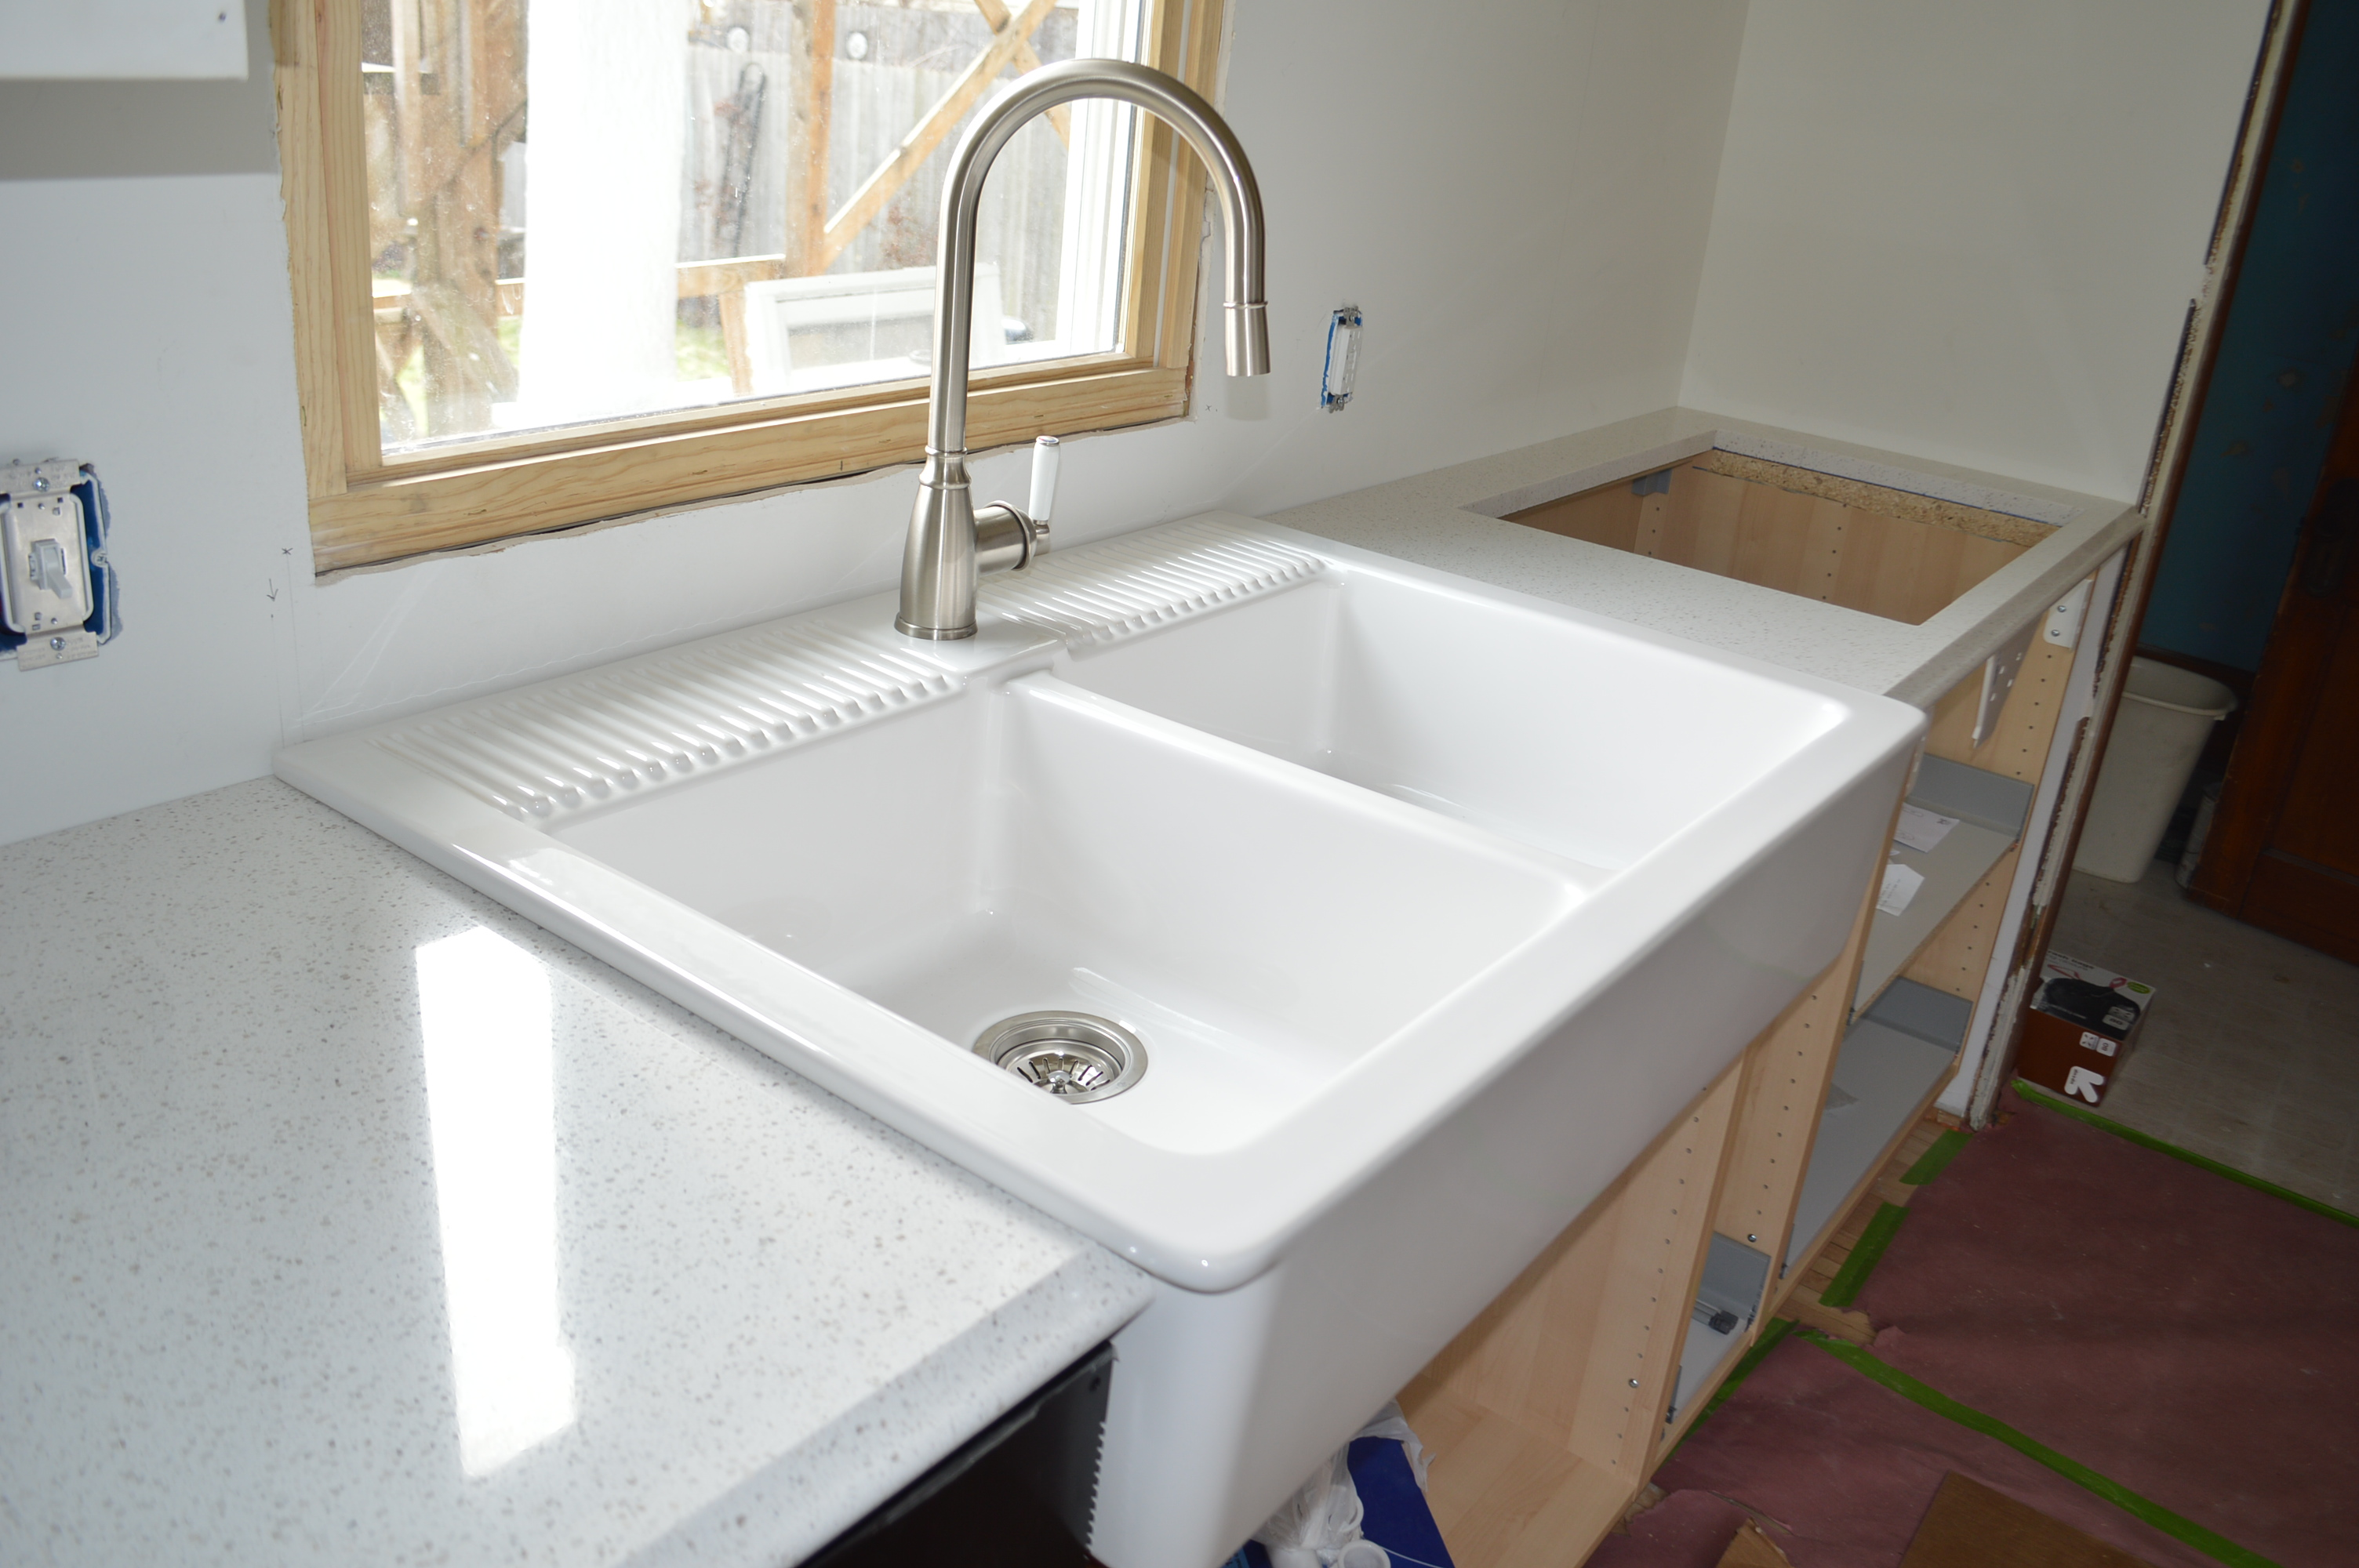 Ordering installing quartz countertops from menards Farmhouse sink ikea